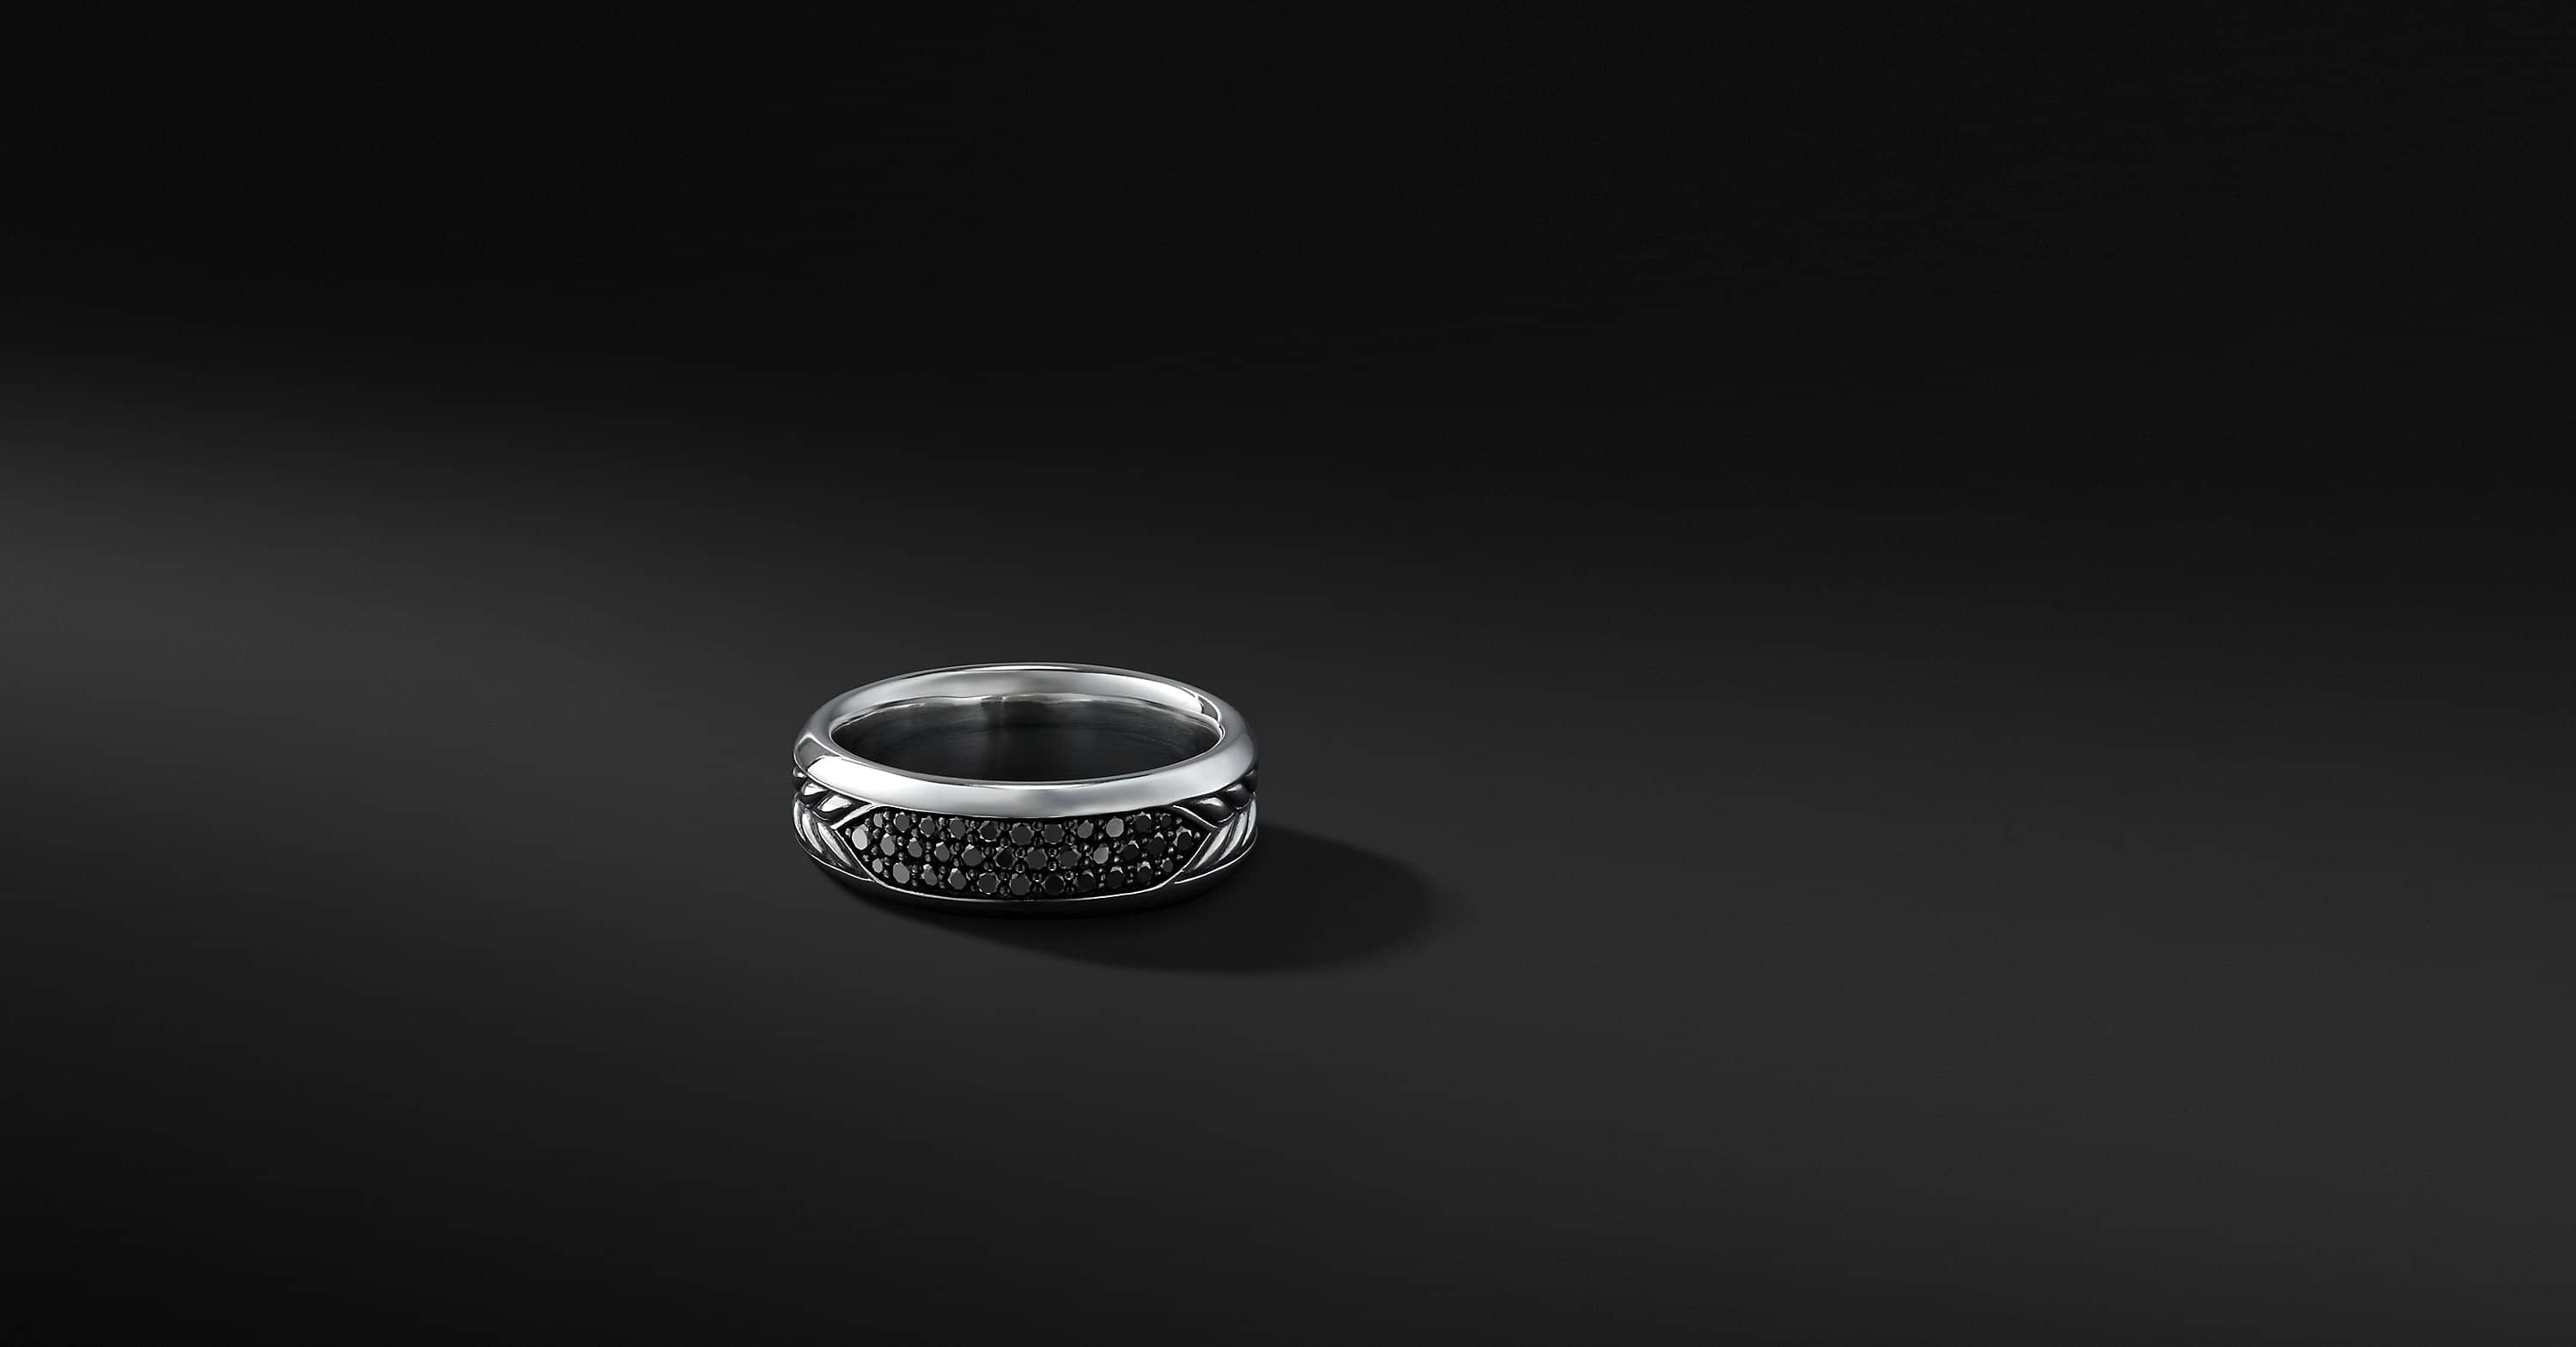 Chevron Band in Sterling Silver with Black Diamonds, 8mm